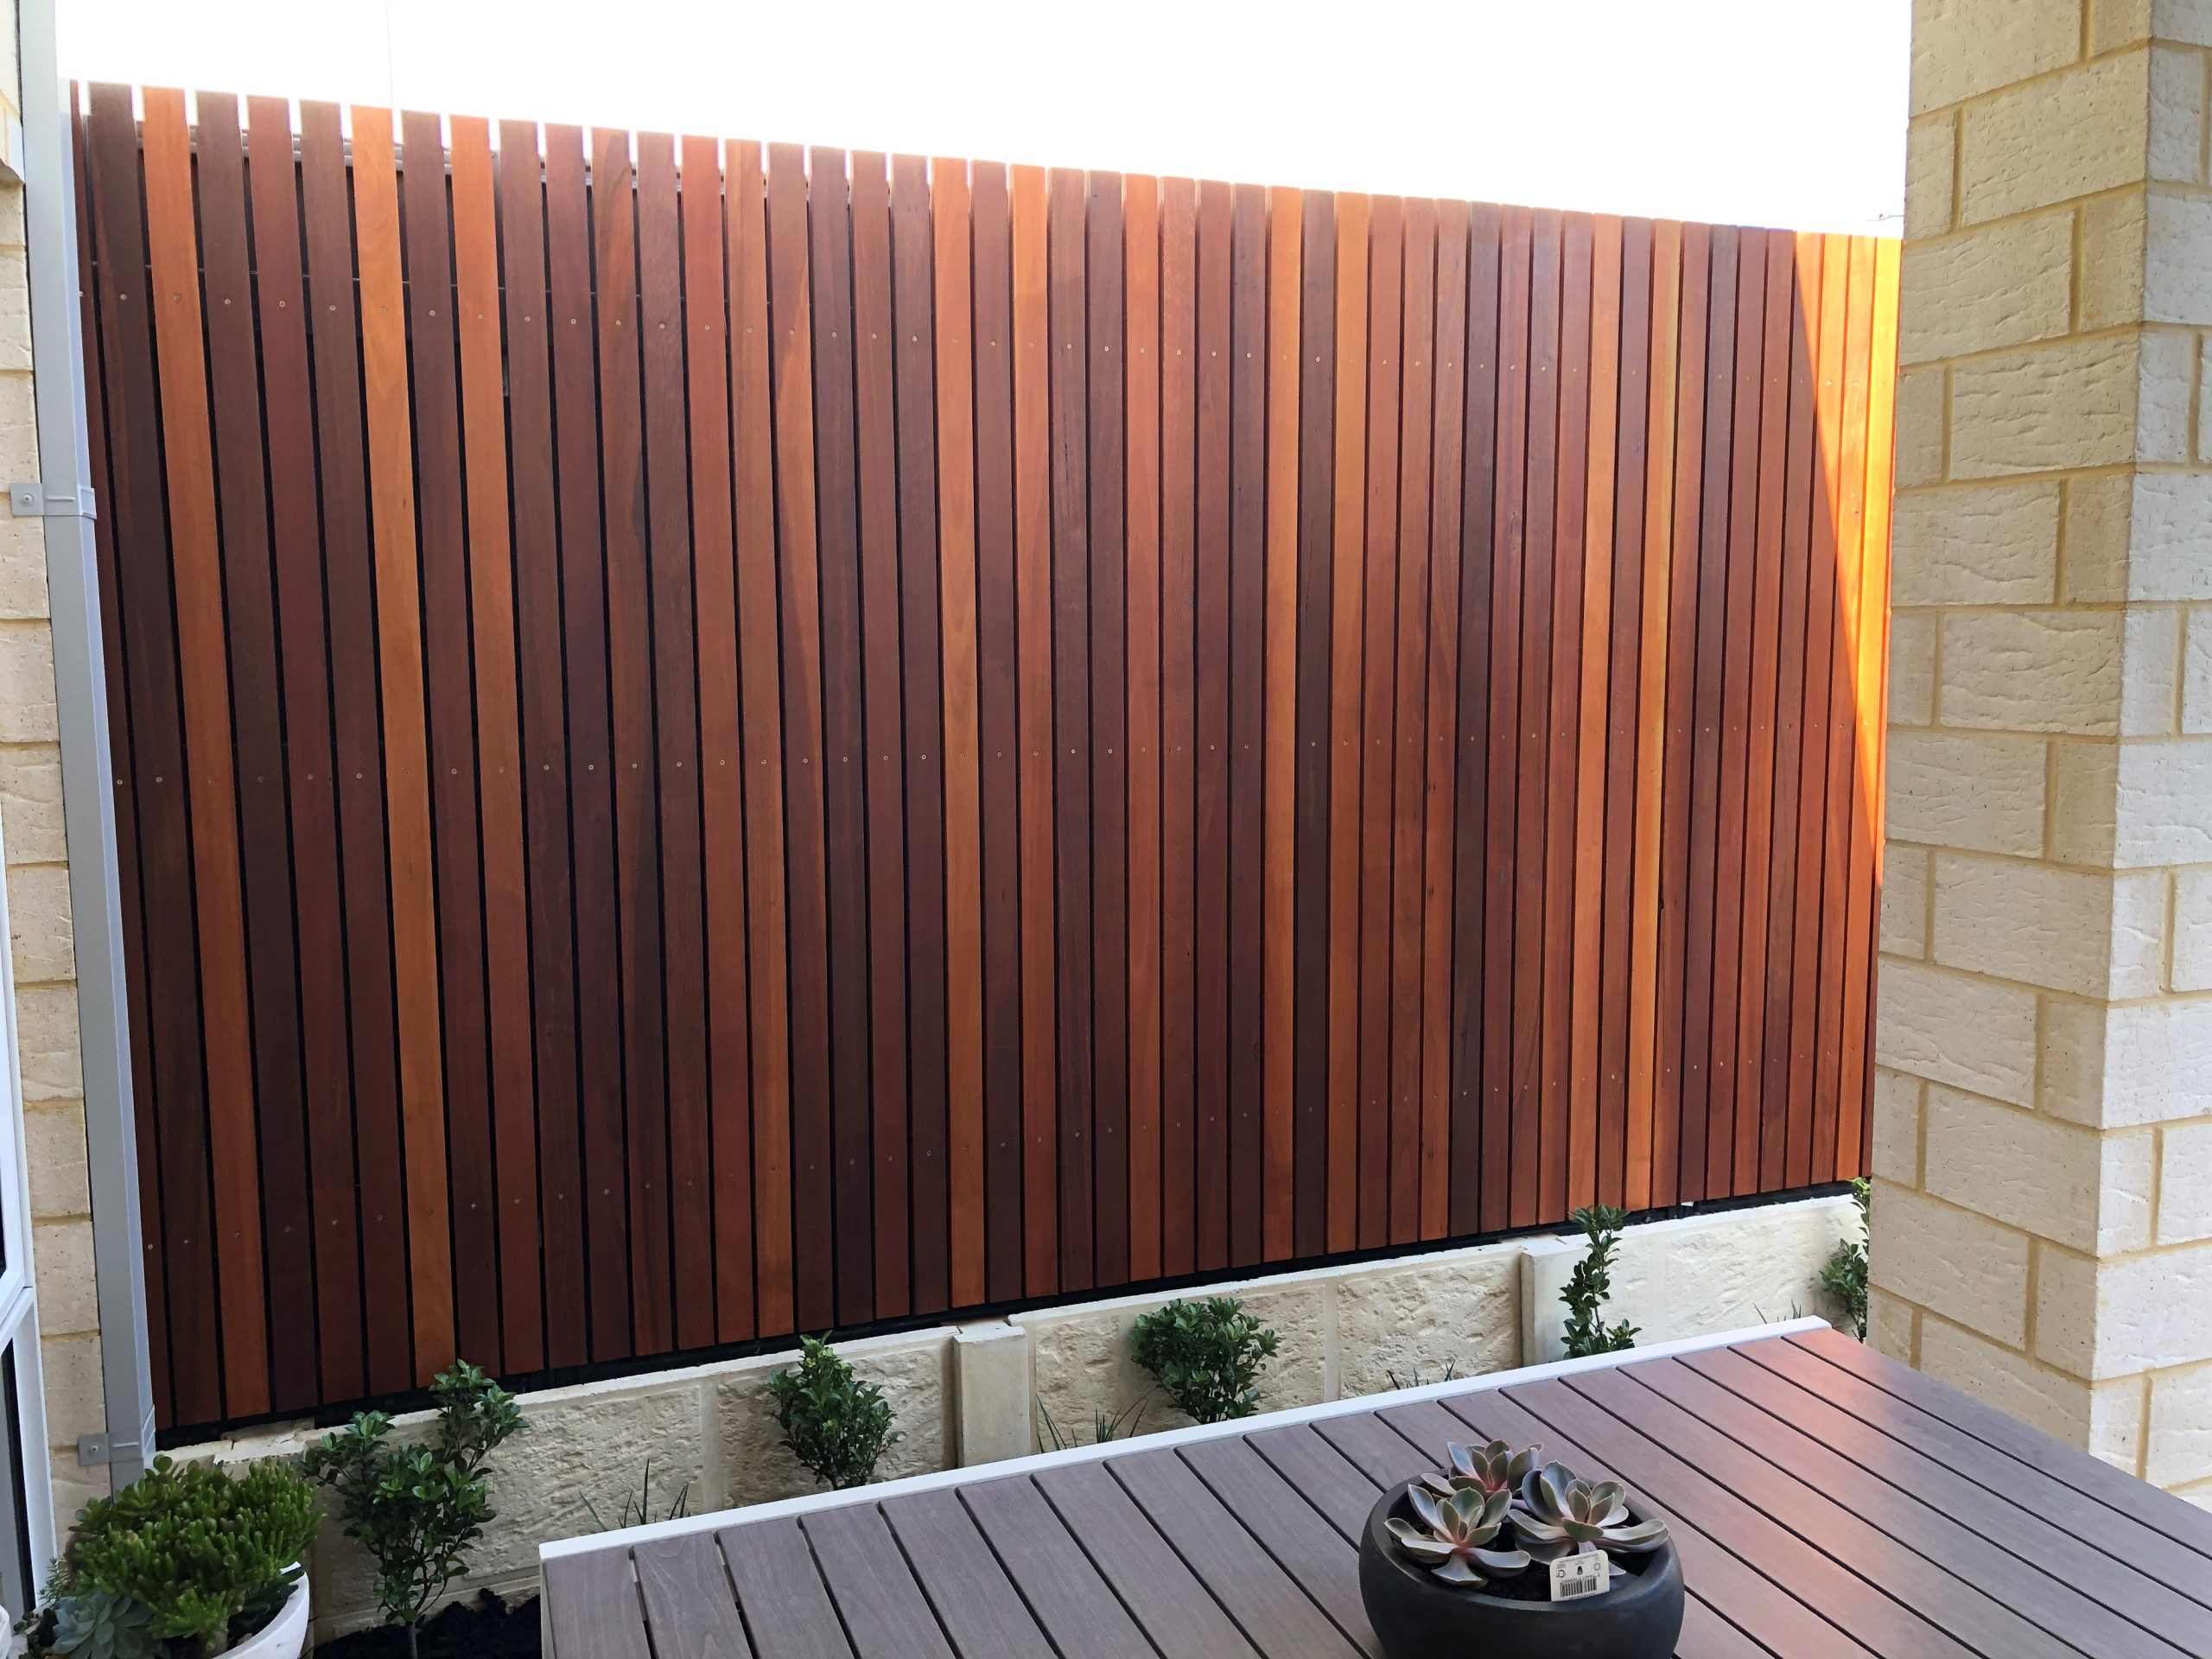 Hardwood wall Ideas in Canberra, ACT